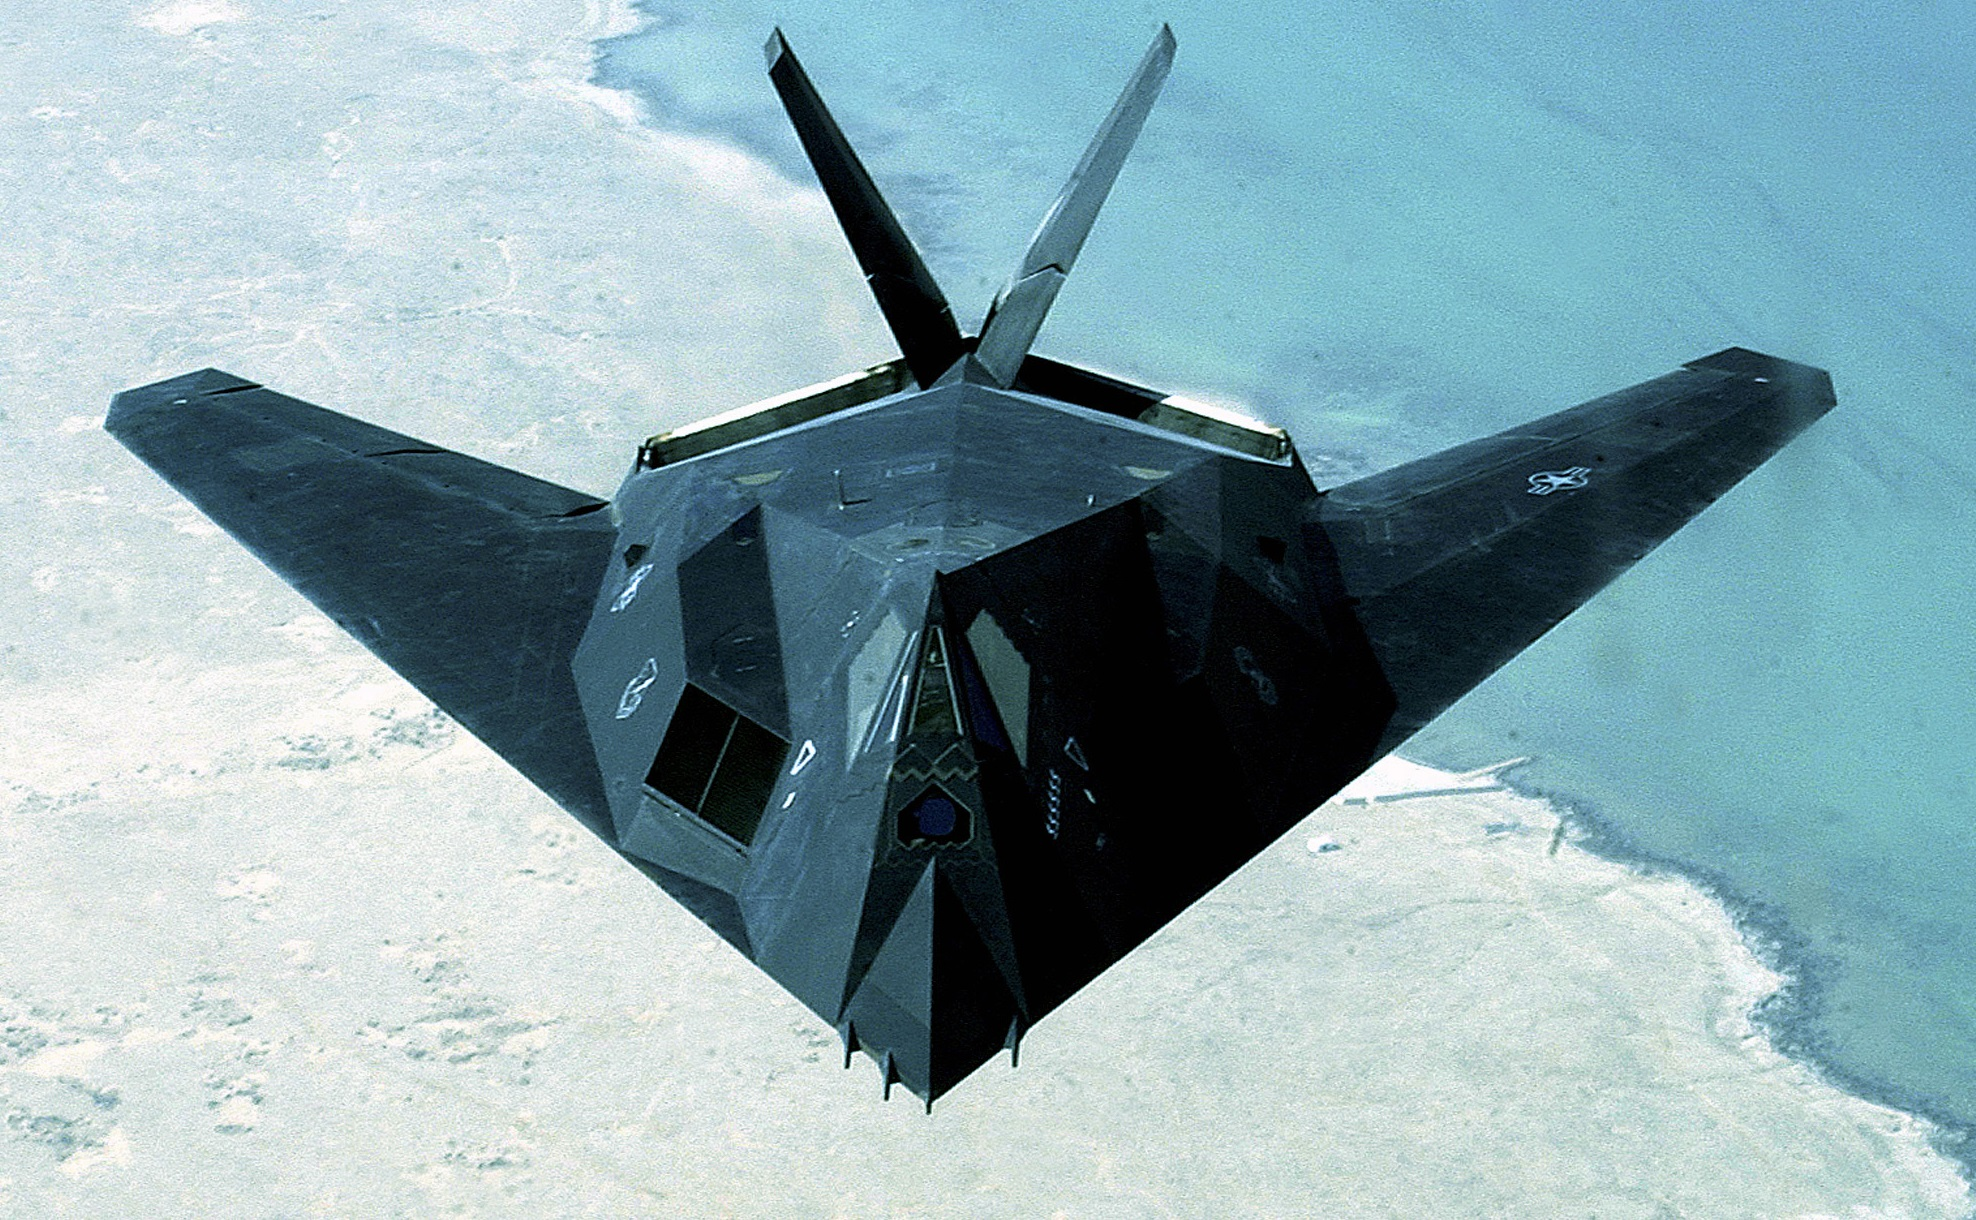 Stealth Fighter Down: In 1999, an F-117 Nighthawk Was Blown Out of the Sky